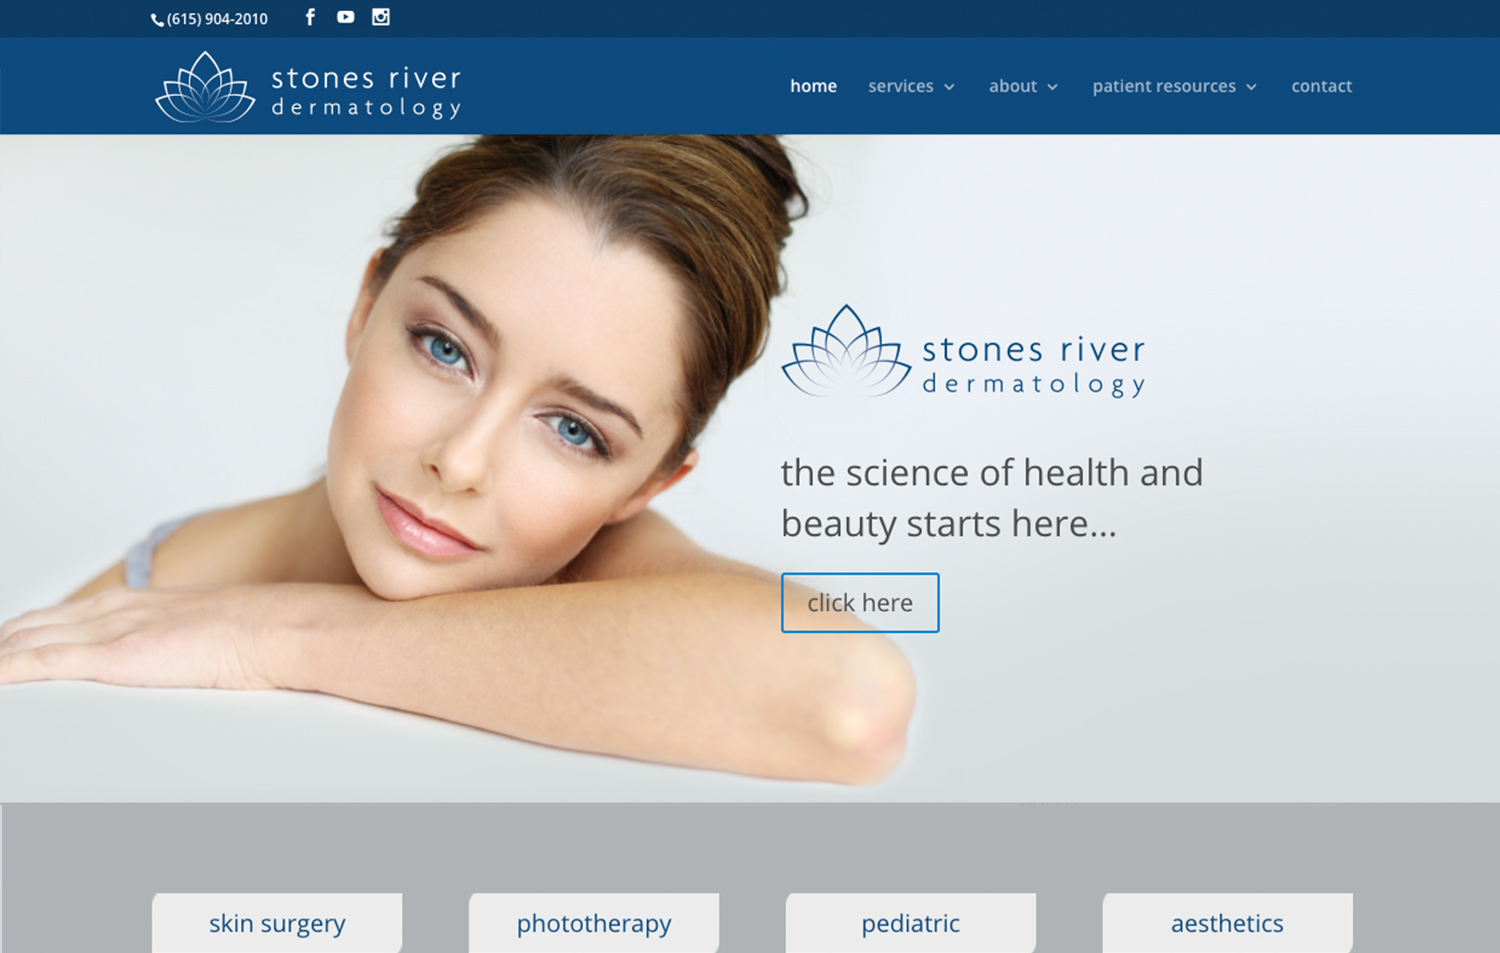 Stones River Dermatology - Navigation Advertising - Healthcare - Web